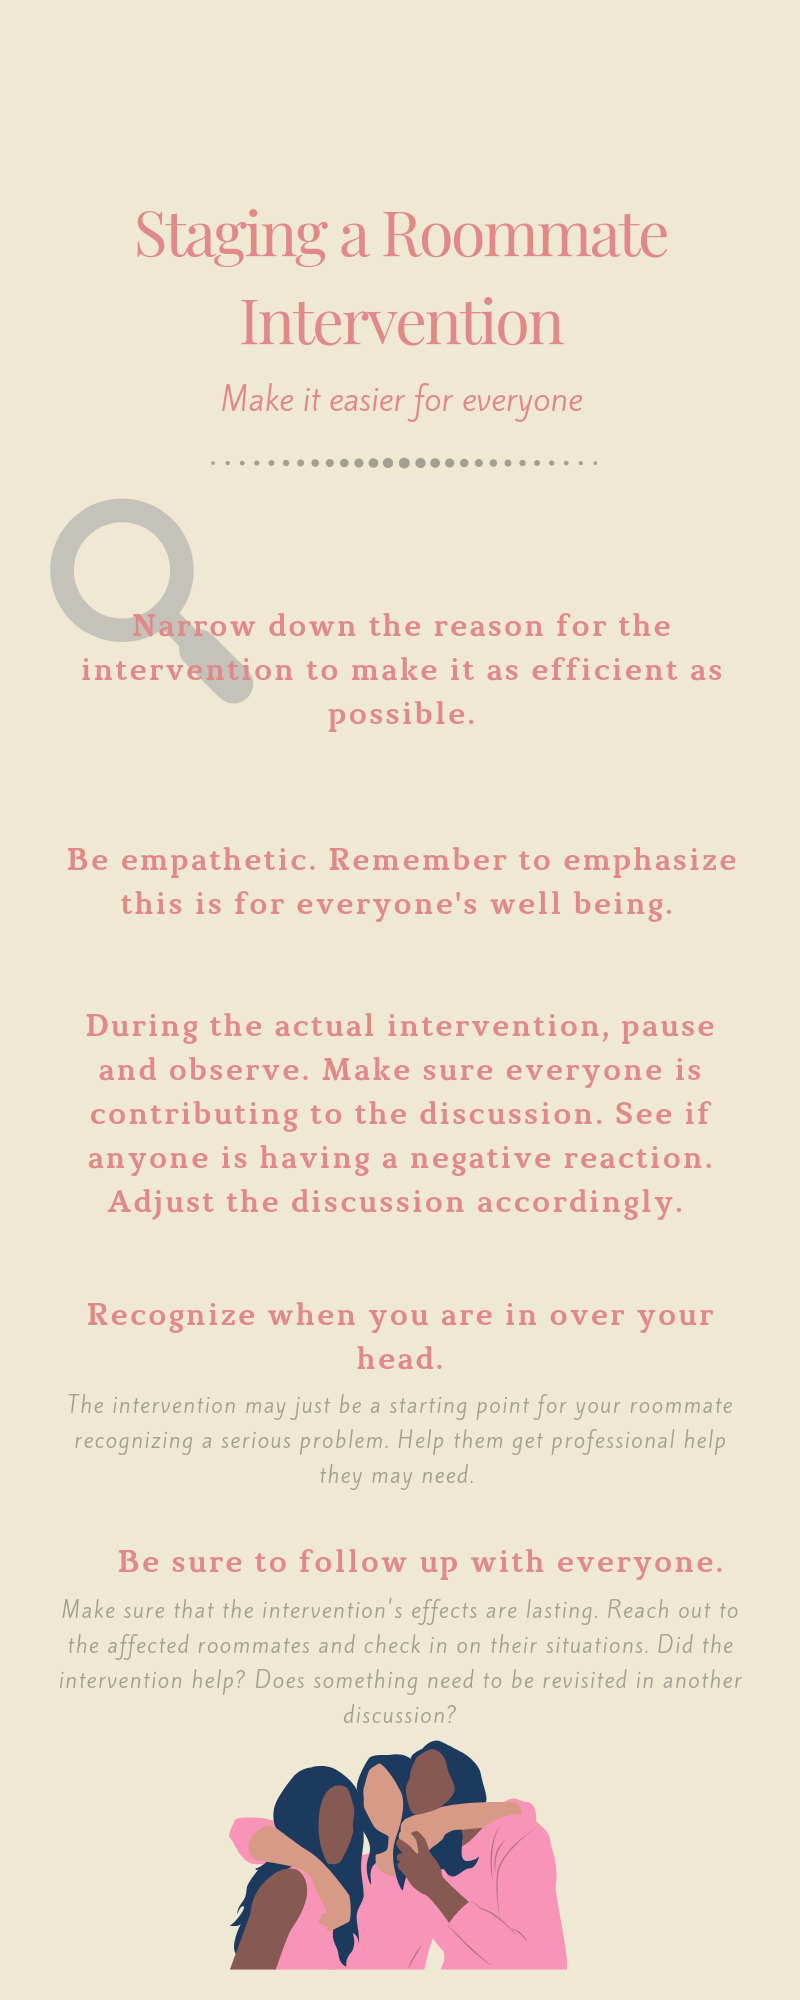 Roommate Tips: Staging A Roommate Intervention